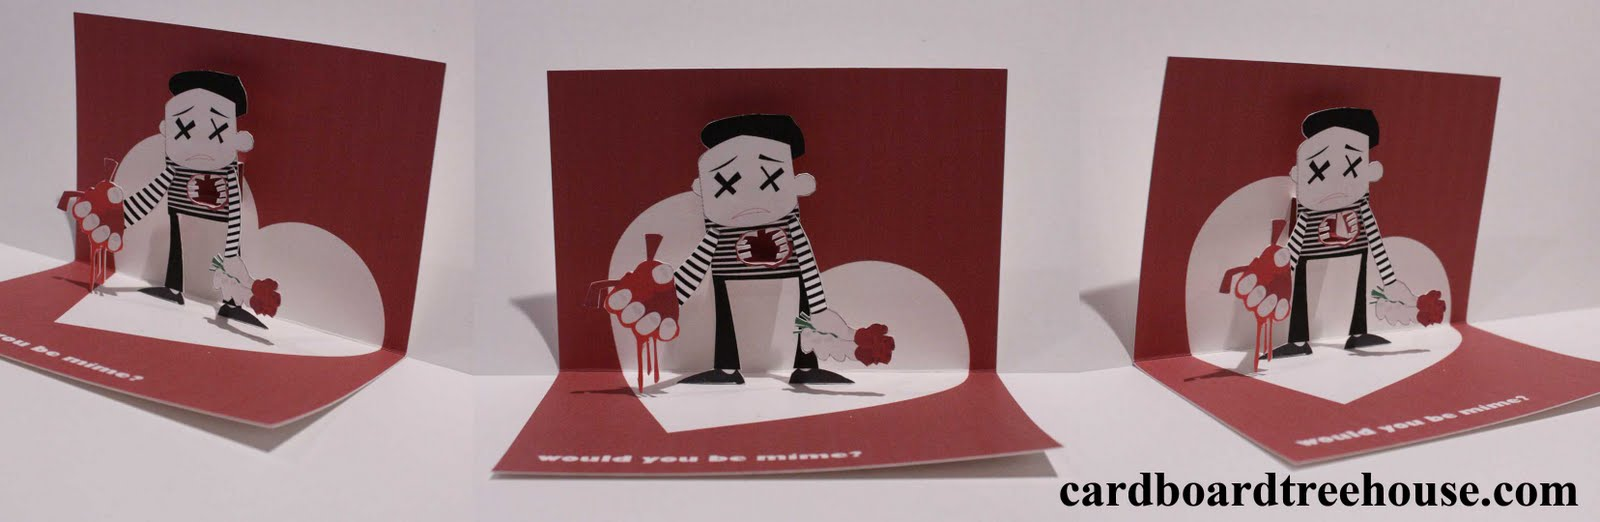 Cardboardtreehouse Be Mime Popup Card And Free Template - Pop up cards templates free